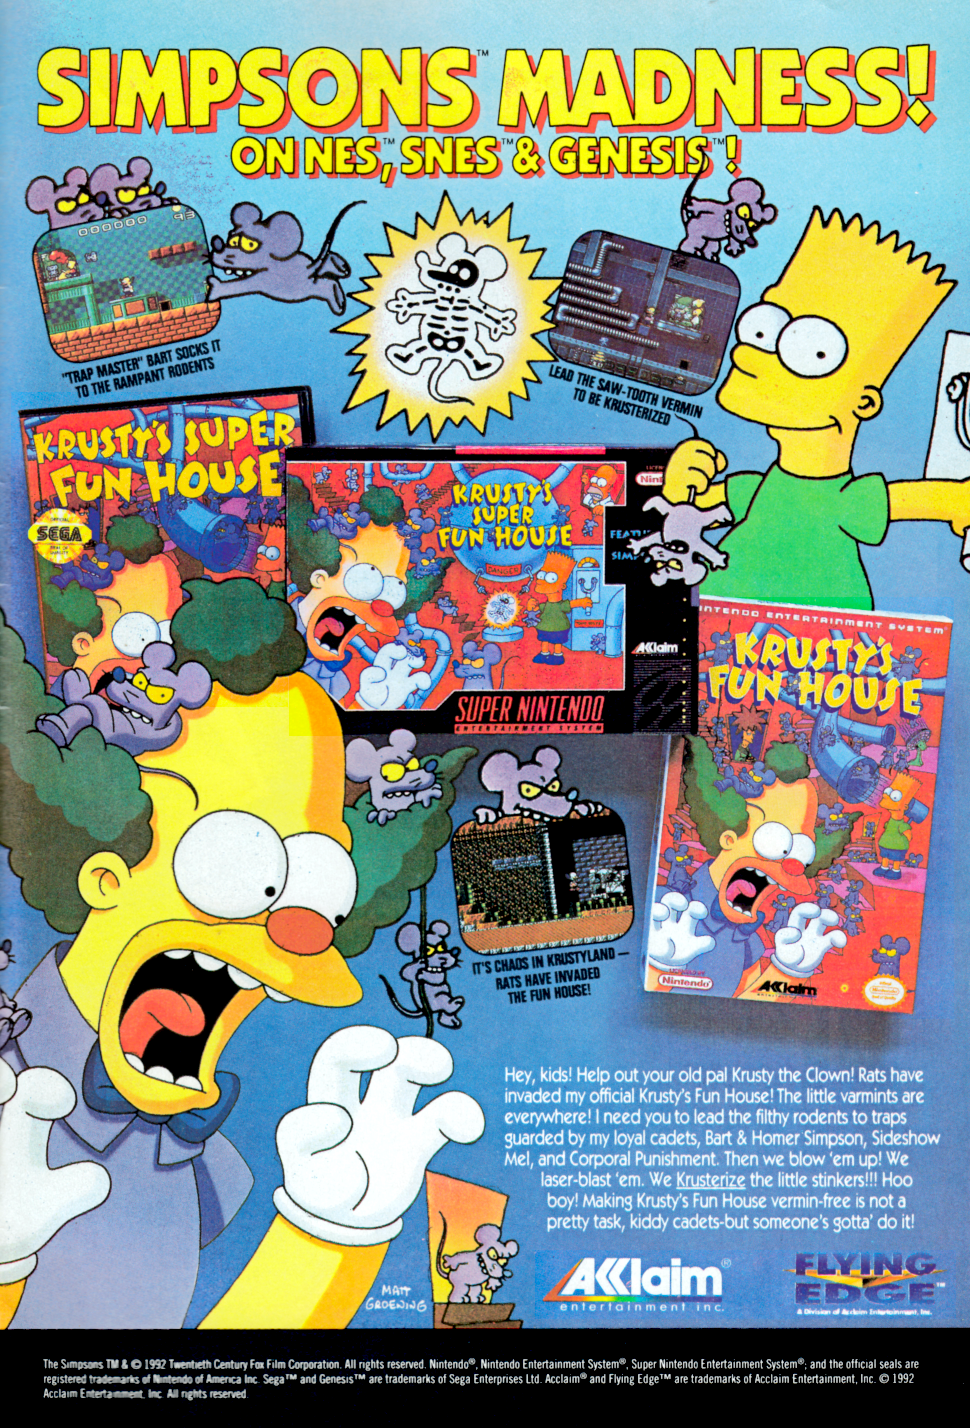 The player directs small rats to an extermination area through complicated maze-like levels. The player controls Krusty the Clown, who must navigate through his Krusty Brand Fun House. Each level is a puzzle in which a number of rats must be exterminated. Using different objects and obstacles, Krusty must create a path for the rats to follow and guide them towards an extermination device. Other creatures such as snakes, martians, flying pigs and birds attempt to hinder Krusty's progress by injuring him; he must throw pies in order to defeat them.  In each stage the extermination devices are run by a different character, including Bart, Homer, Corporal Punishment and Sideshow Mel.